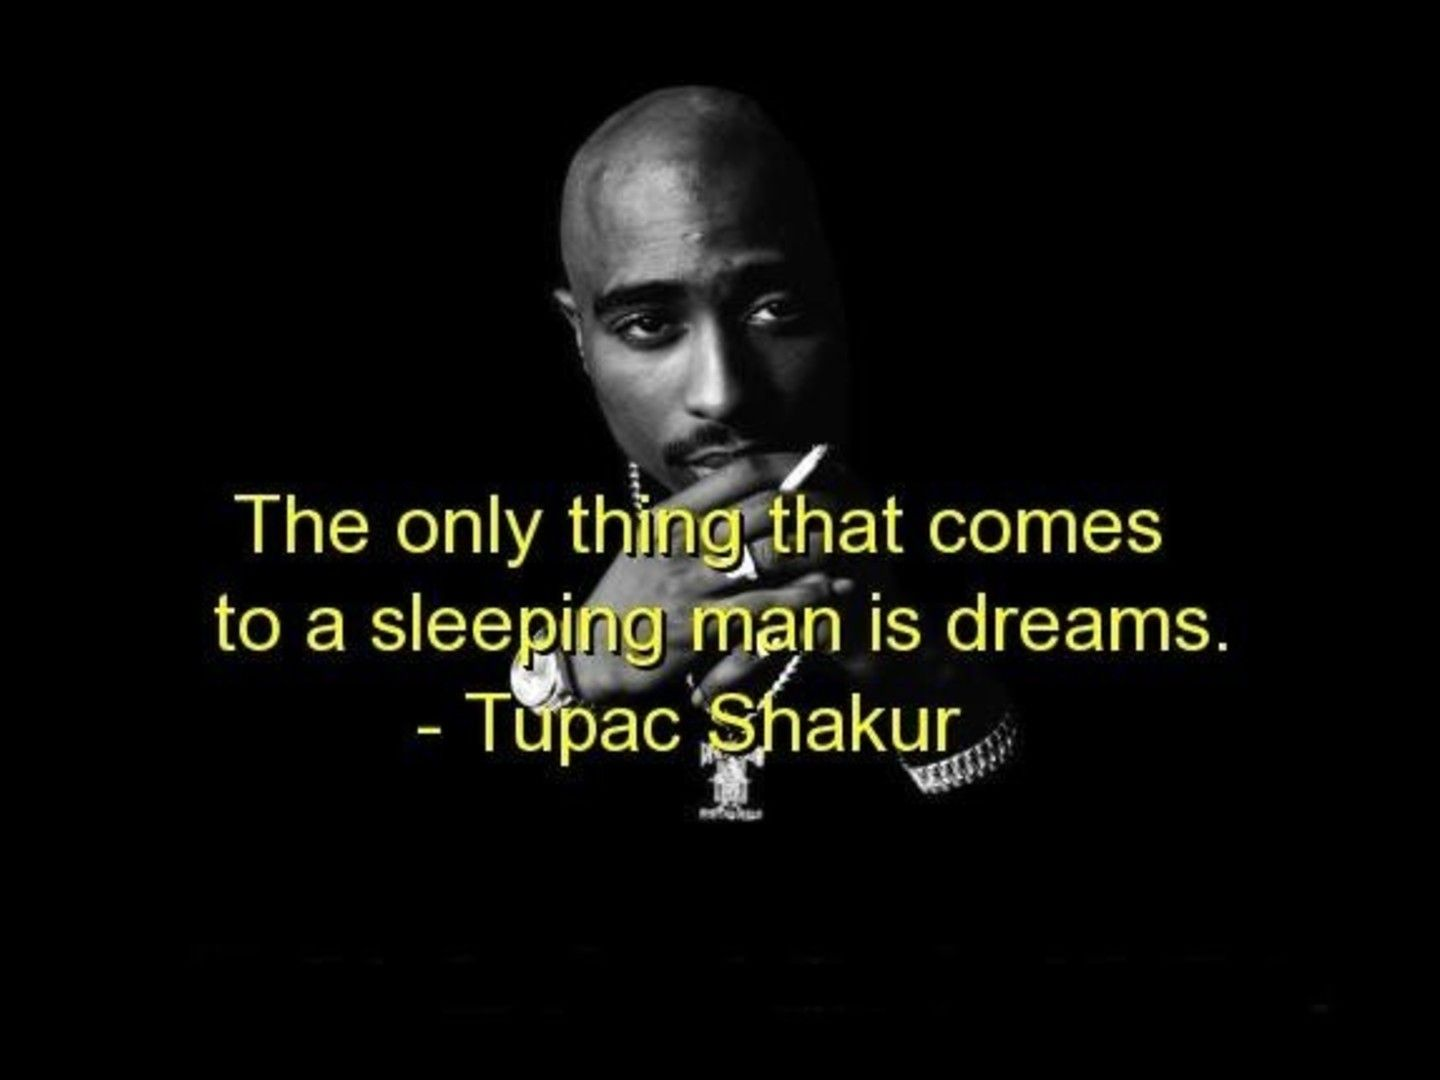 best best tupac quotes rap tupac shakur and rapper